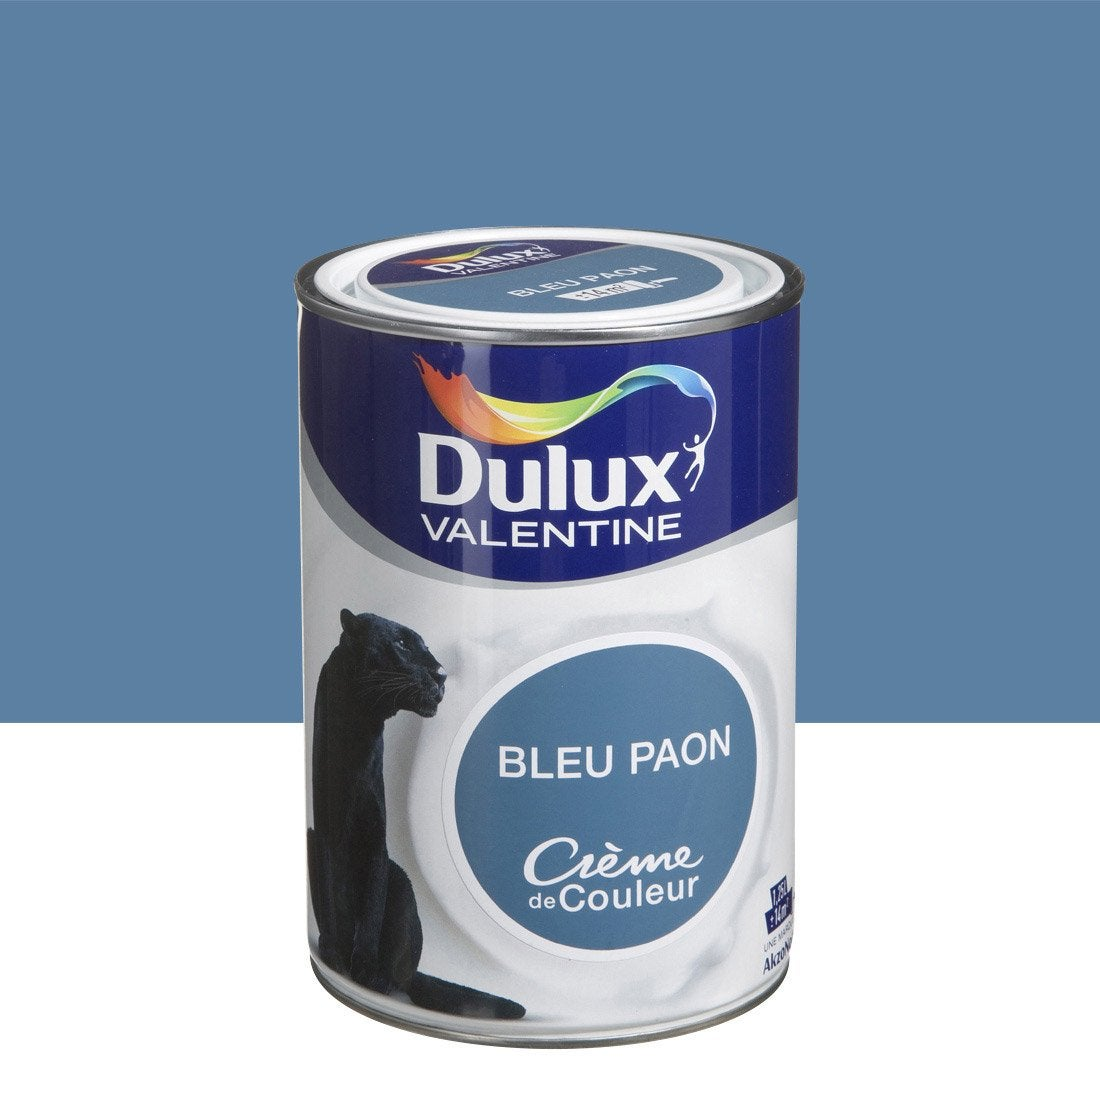 peinture bleu paon dulux valentine cr me de couleur l leroy merlin. Black Bedroom Furniture Sets. Home Design Ideas